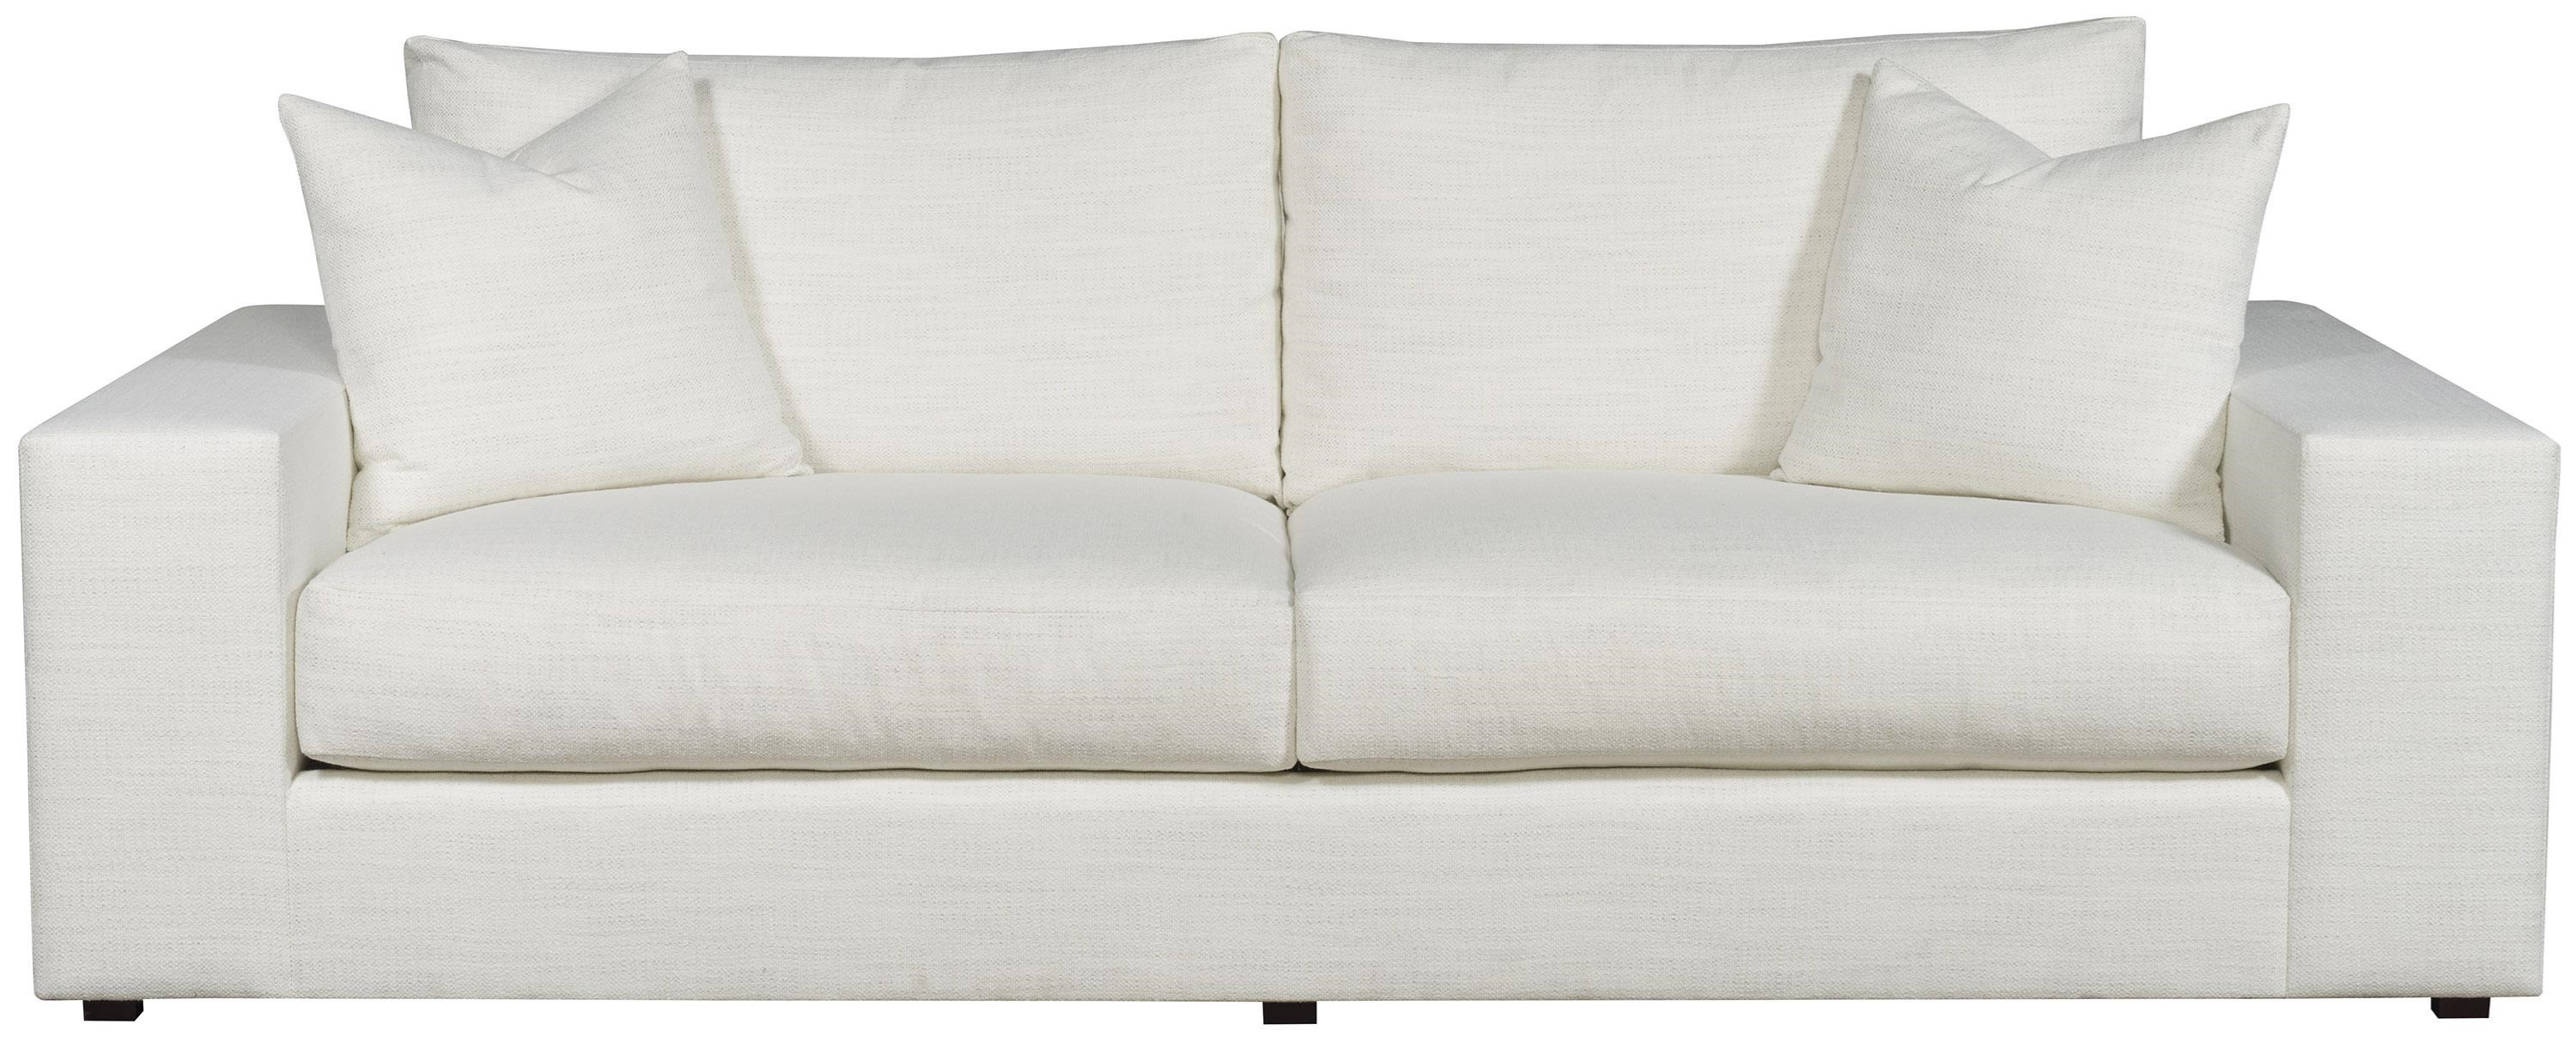 Lucca Lucca Two-Seat Sofa by Vanguard Furniture at Baer's Furniture